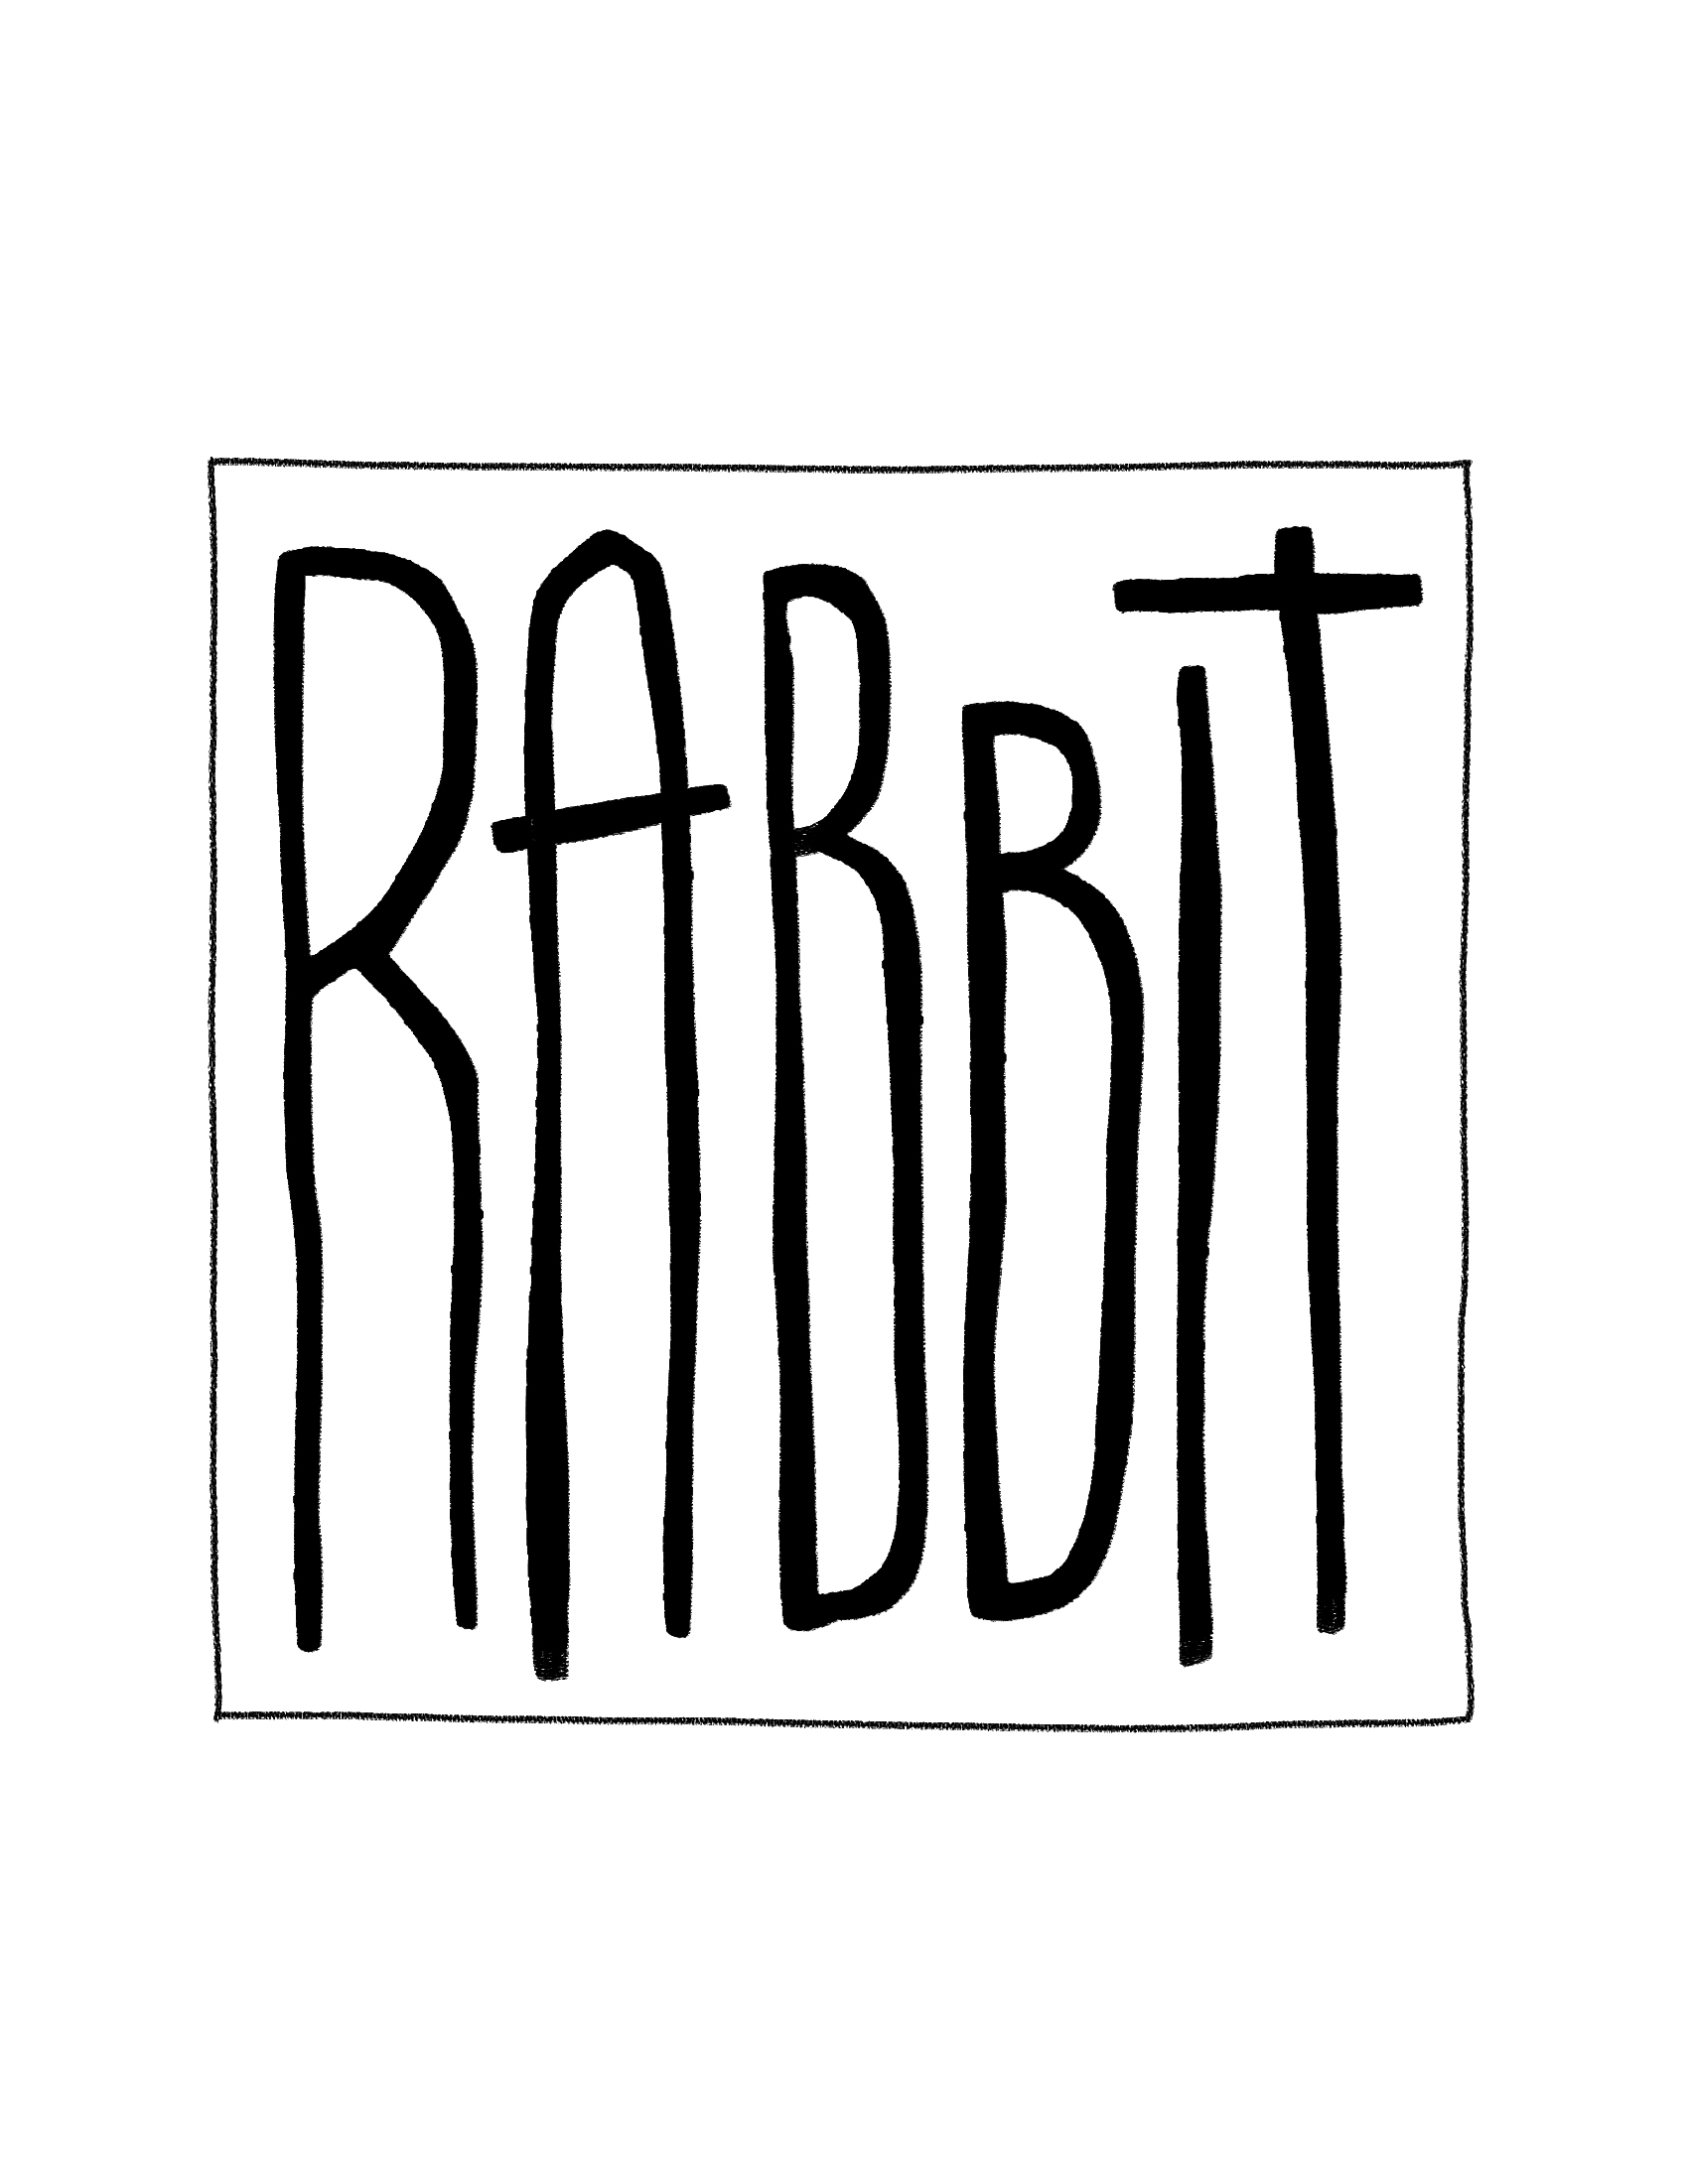 zodiac_0008_rabbit.jpg